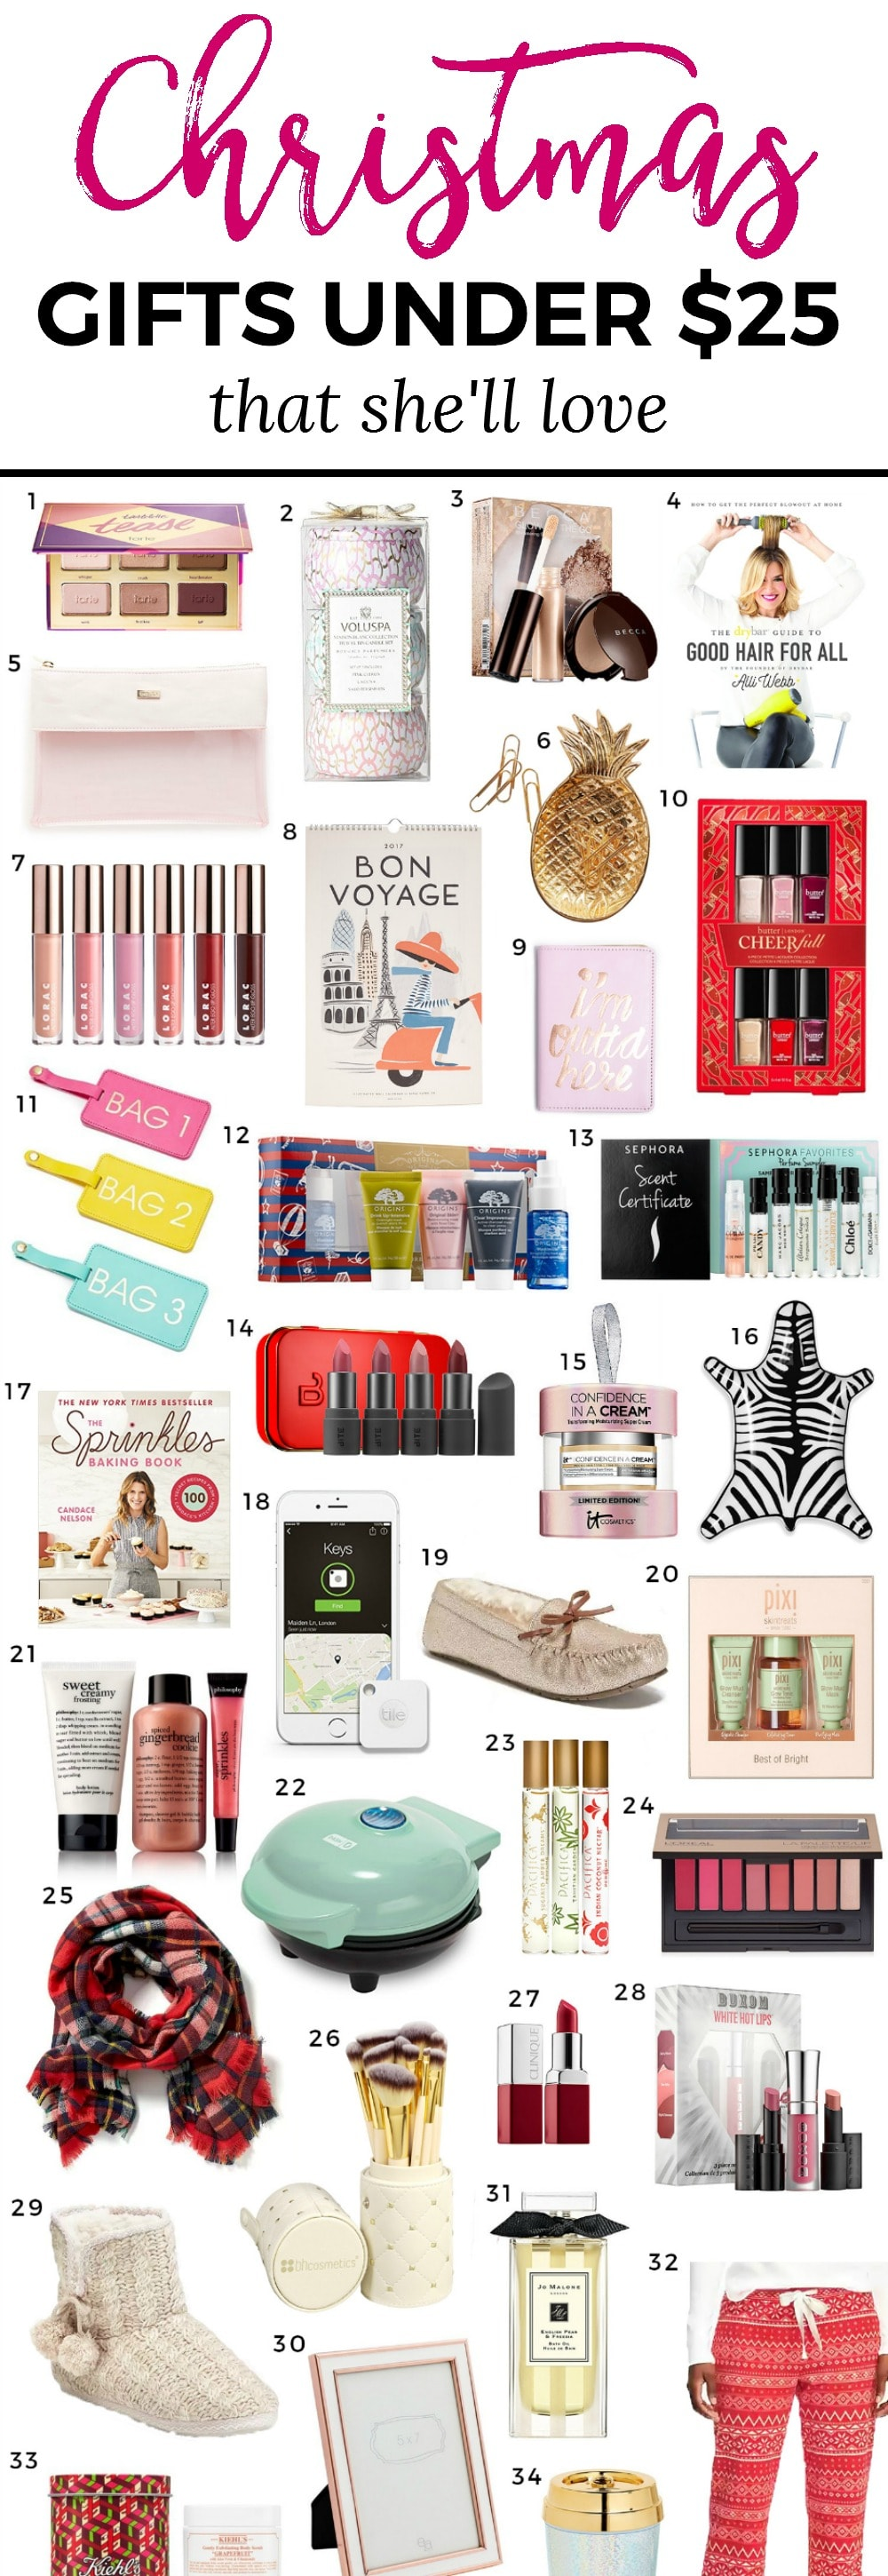 The Best Christmas Gift Ideas for Women under $25 | Ashley ...